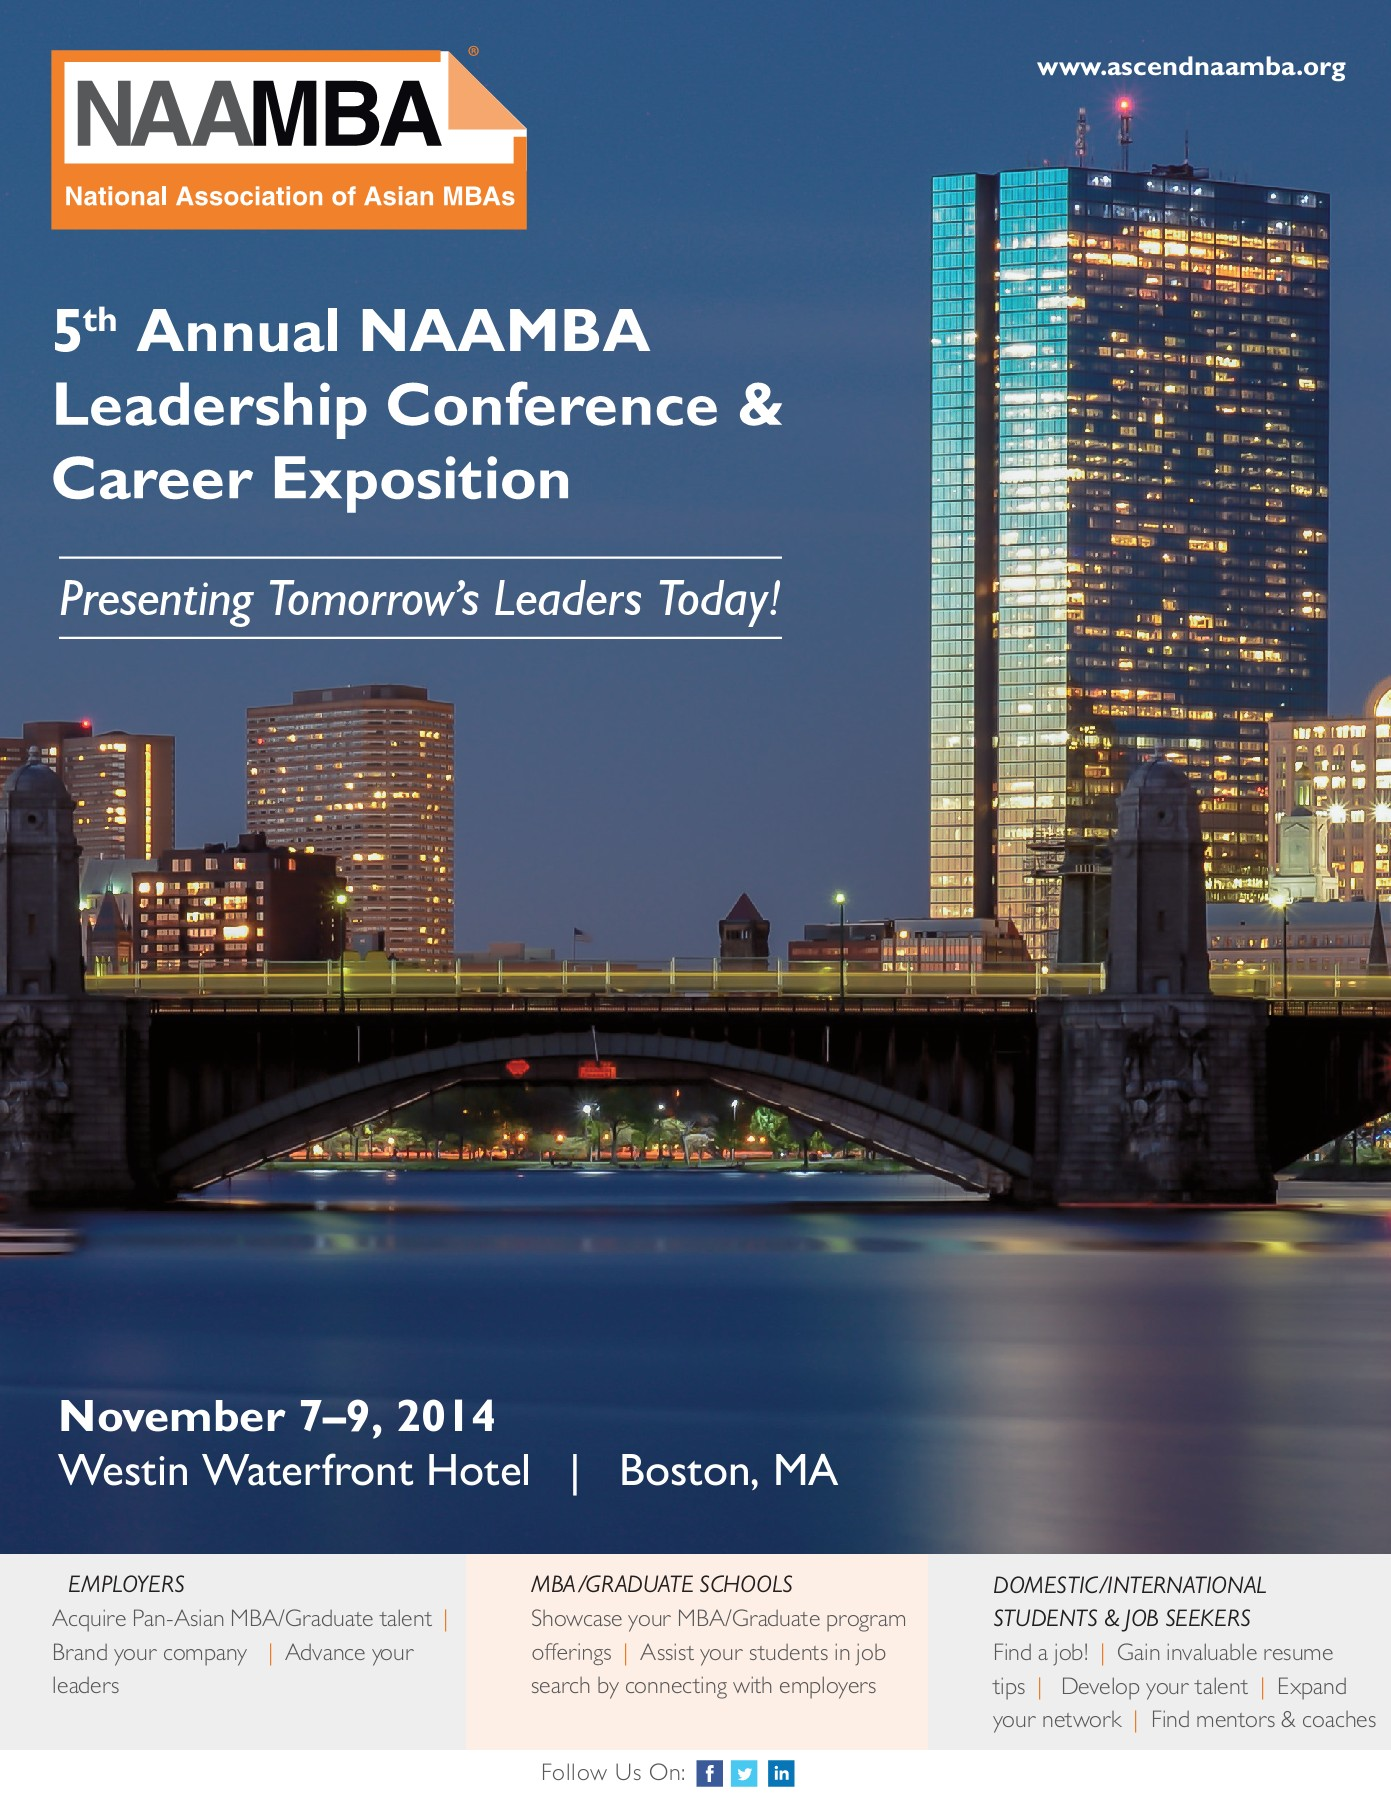 5th Annual NAAMBA Leadership Conference & Career Exposition